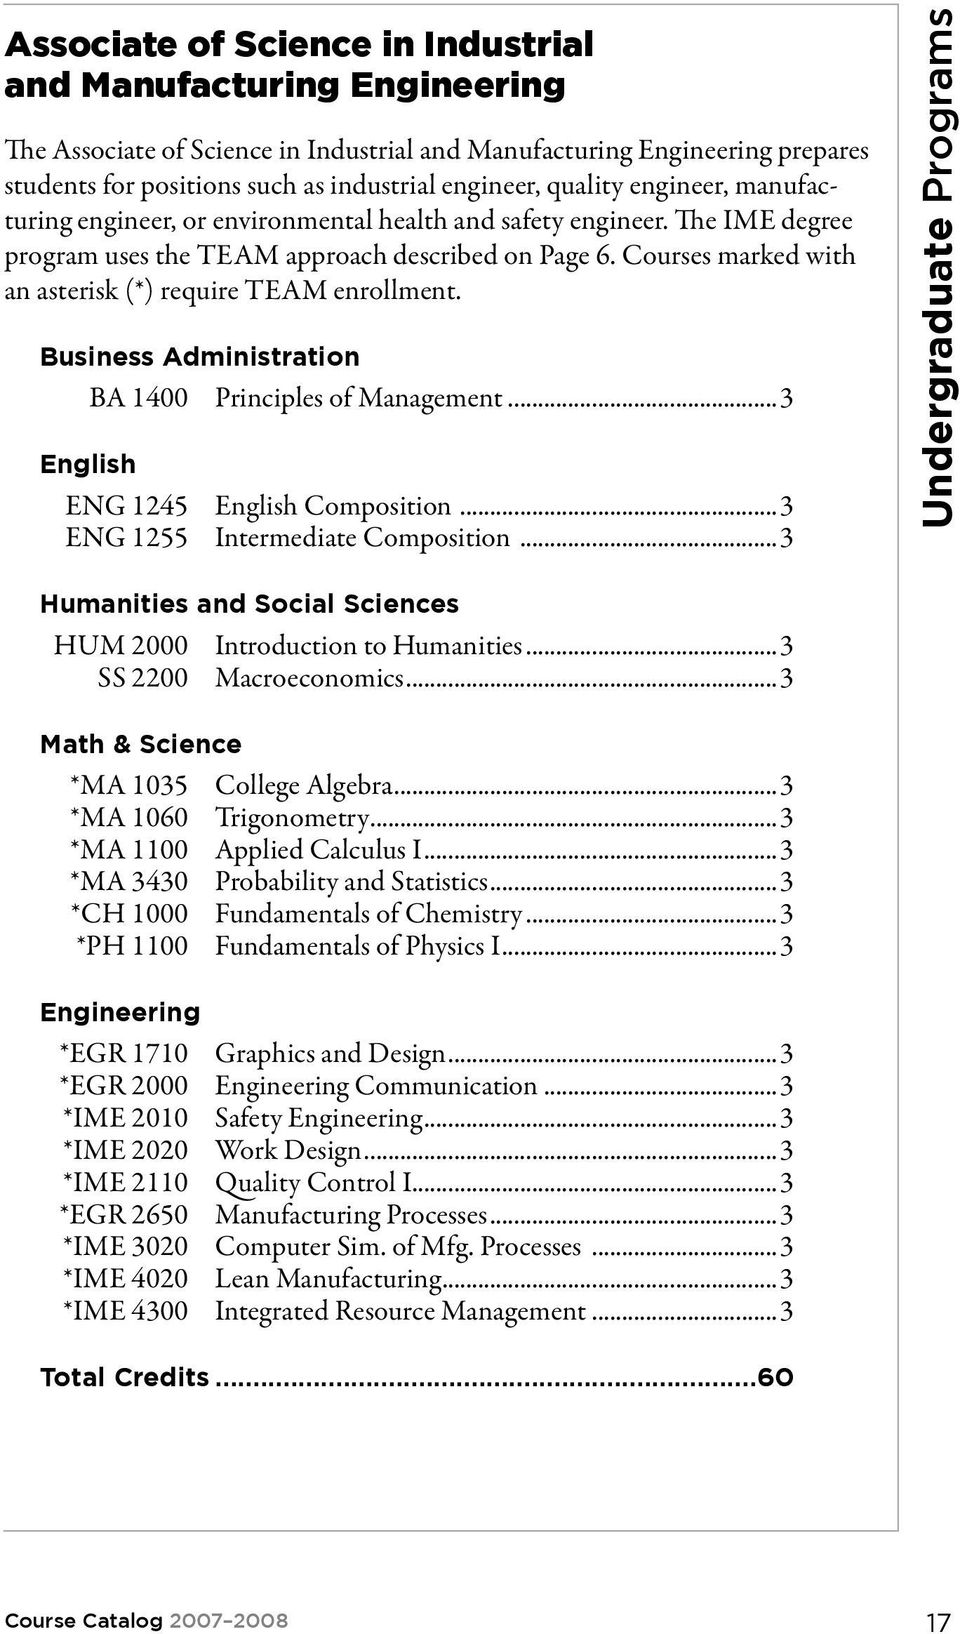 Courses marked with an asterisk (*) require TEAM enrollment. Business Administration BA 1400 Principles of Management...3 English ENG 1245 English Composition...3 ENG 1255 Intermediate Composition.